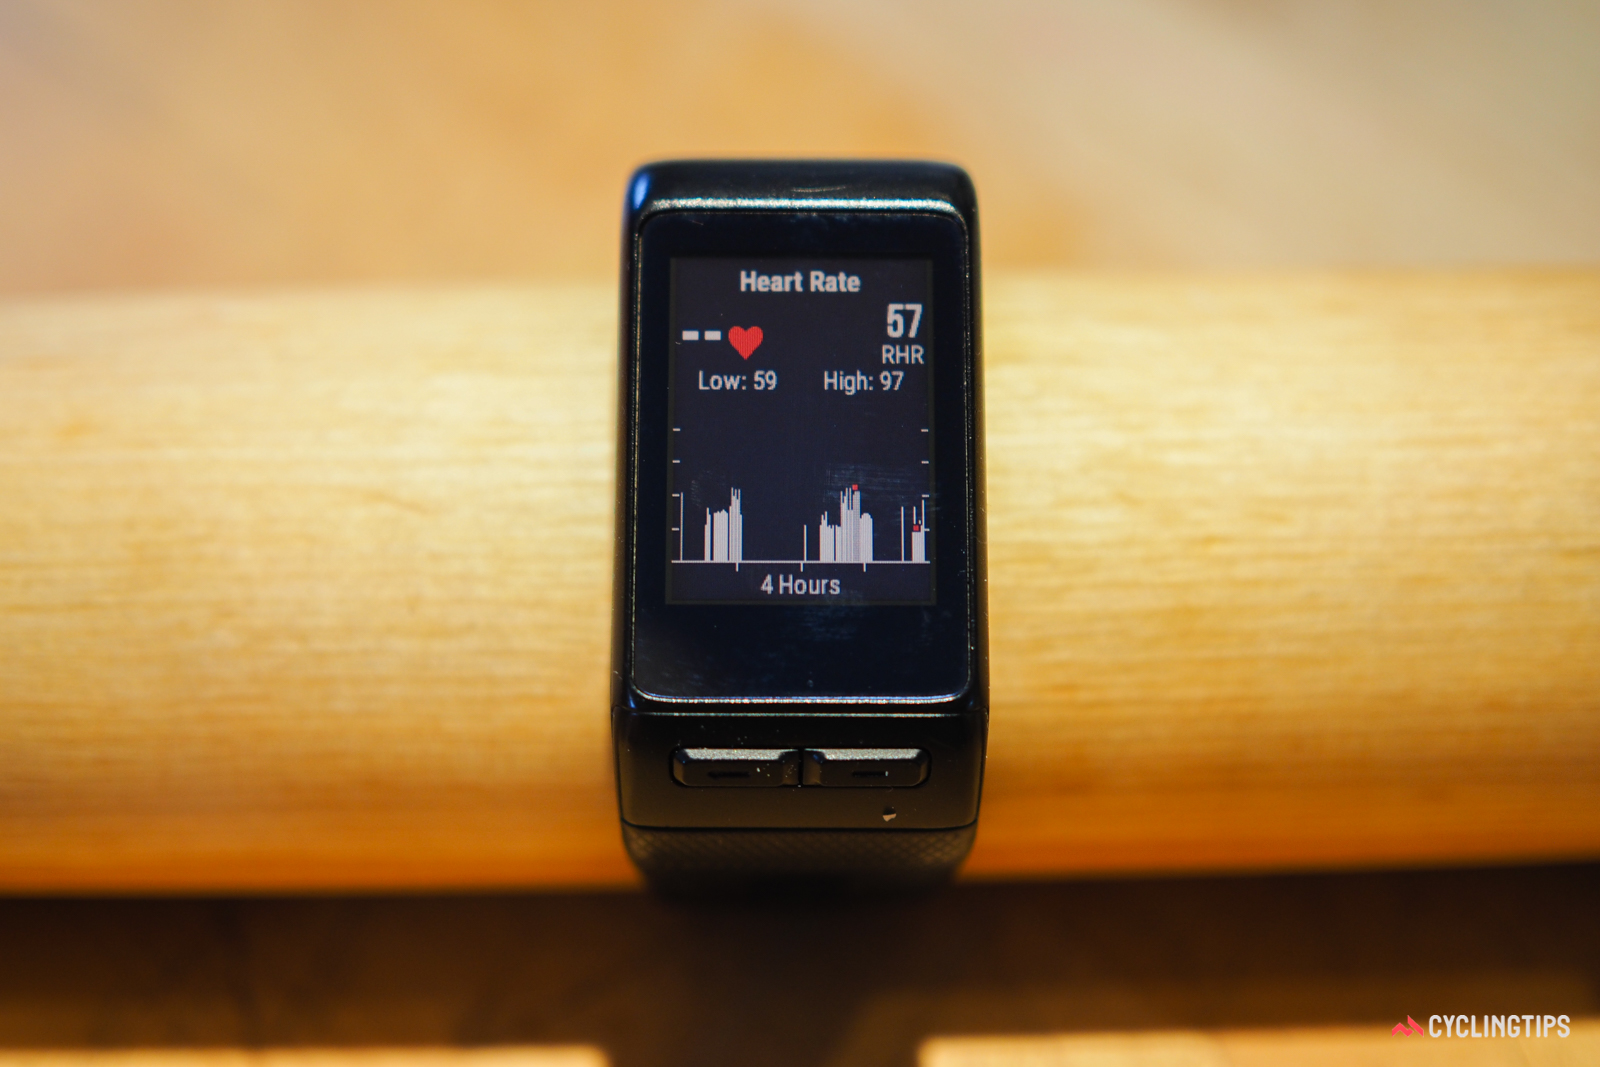 Similarly, the heart rate screen has supplemental sub-screens that provide more detailed past infomation.